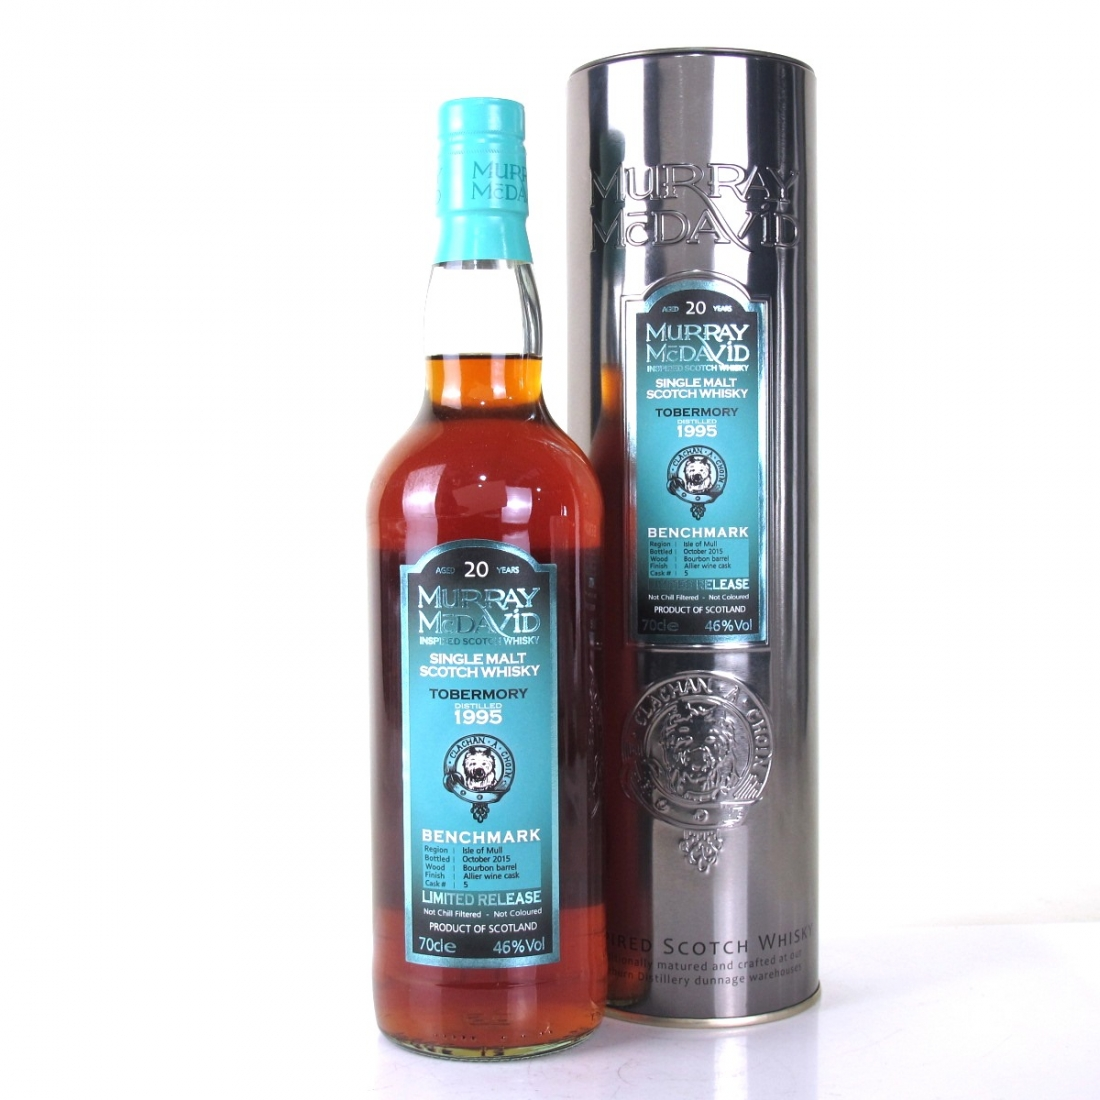 Tobermory 1995 Murray McDavid 20 Year Old